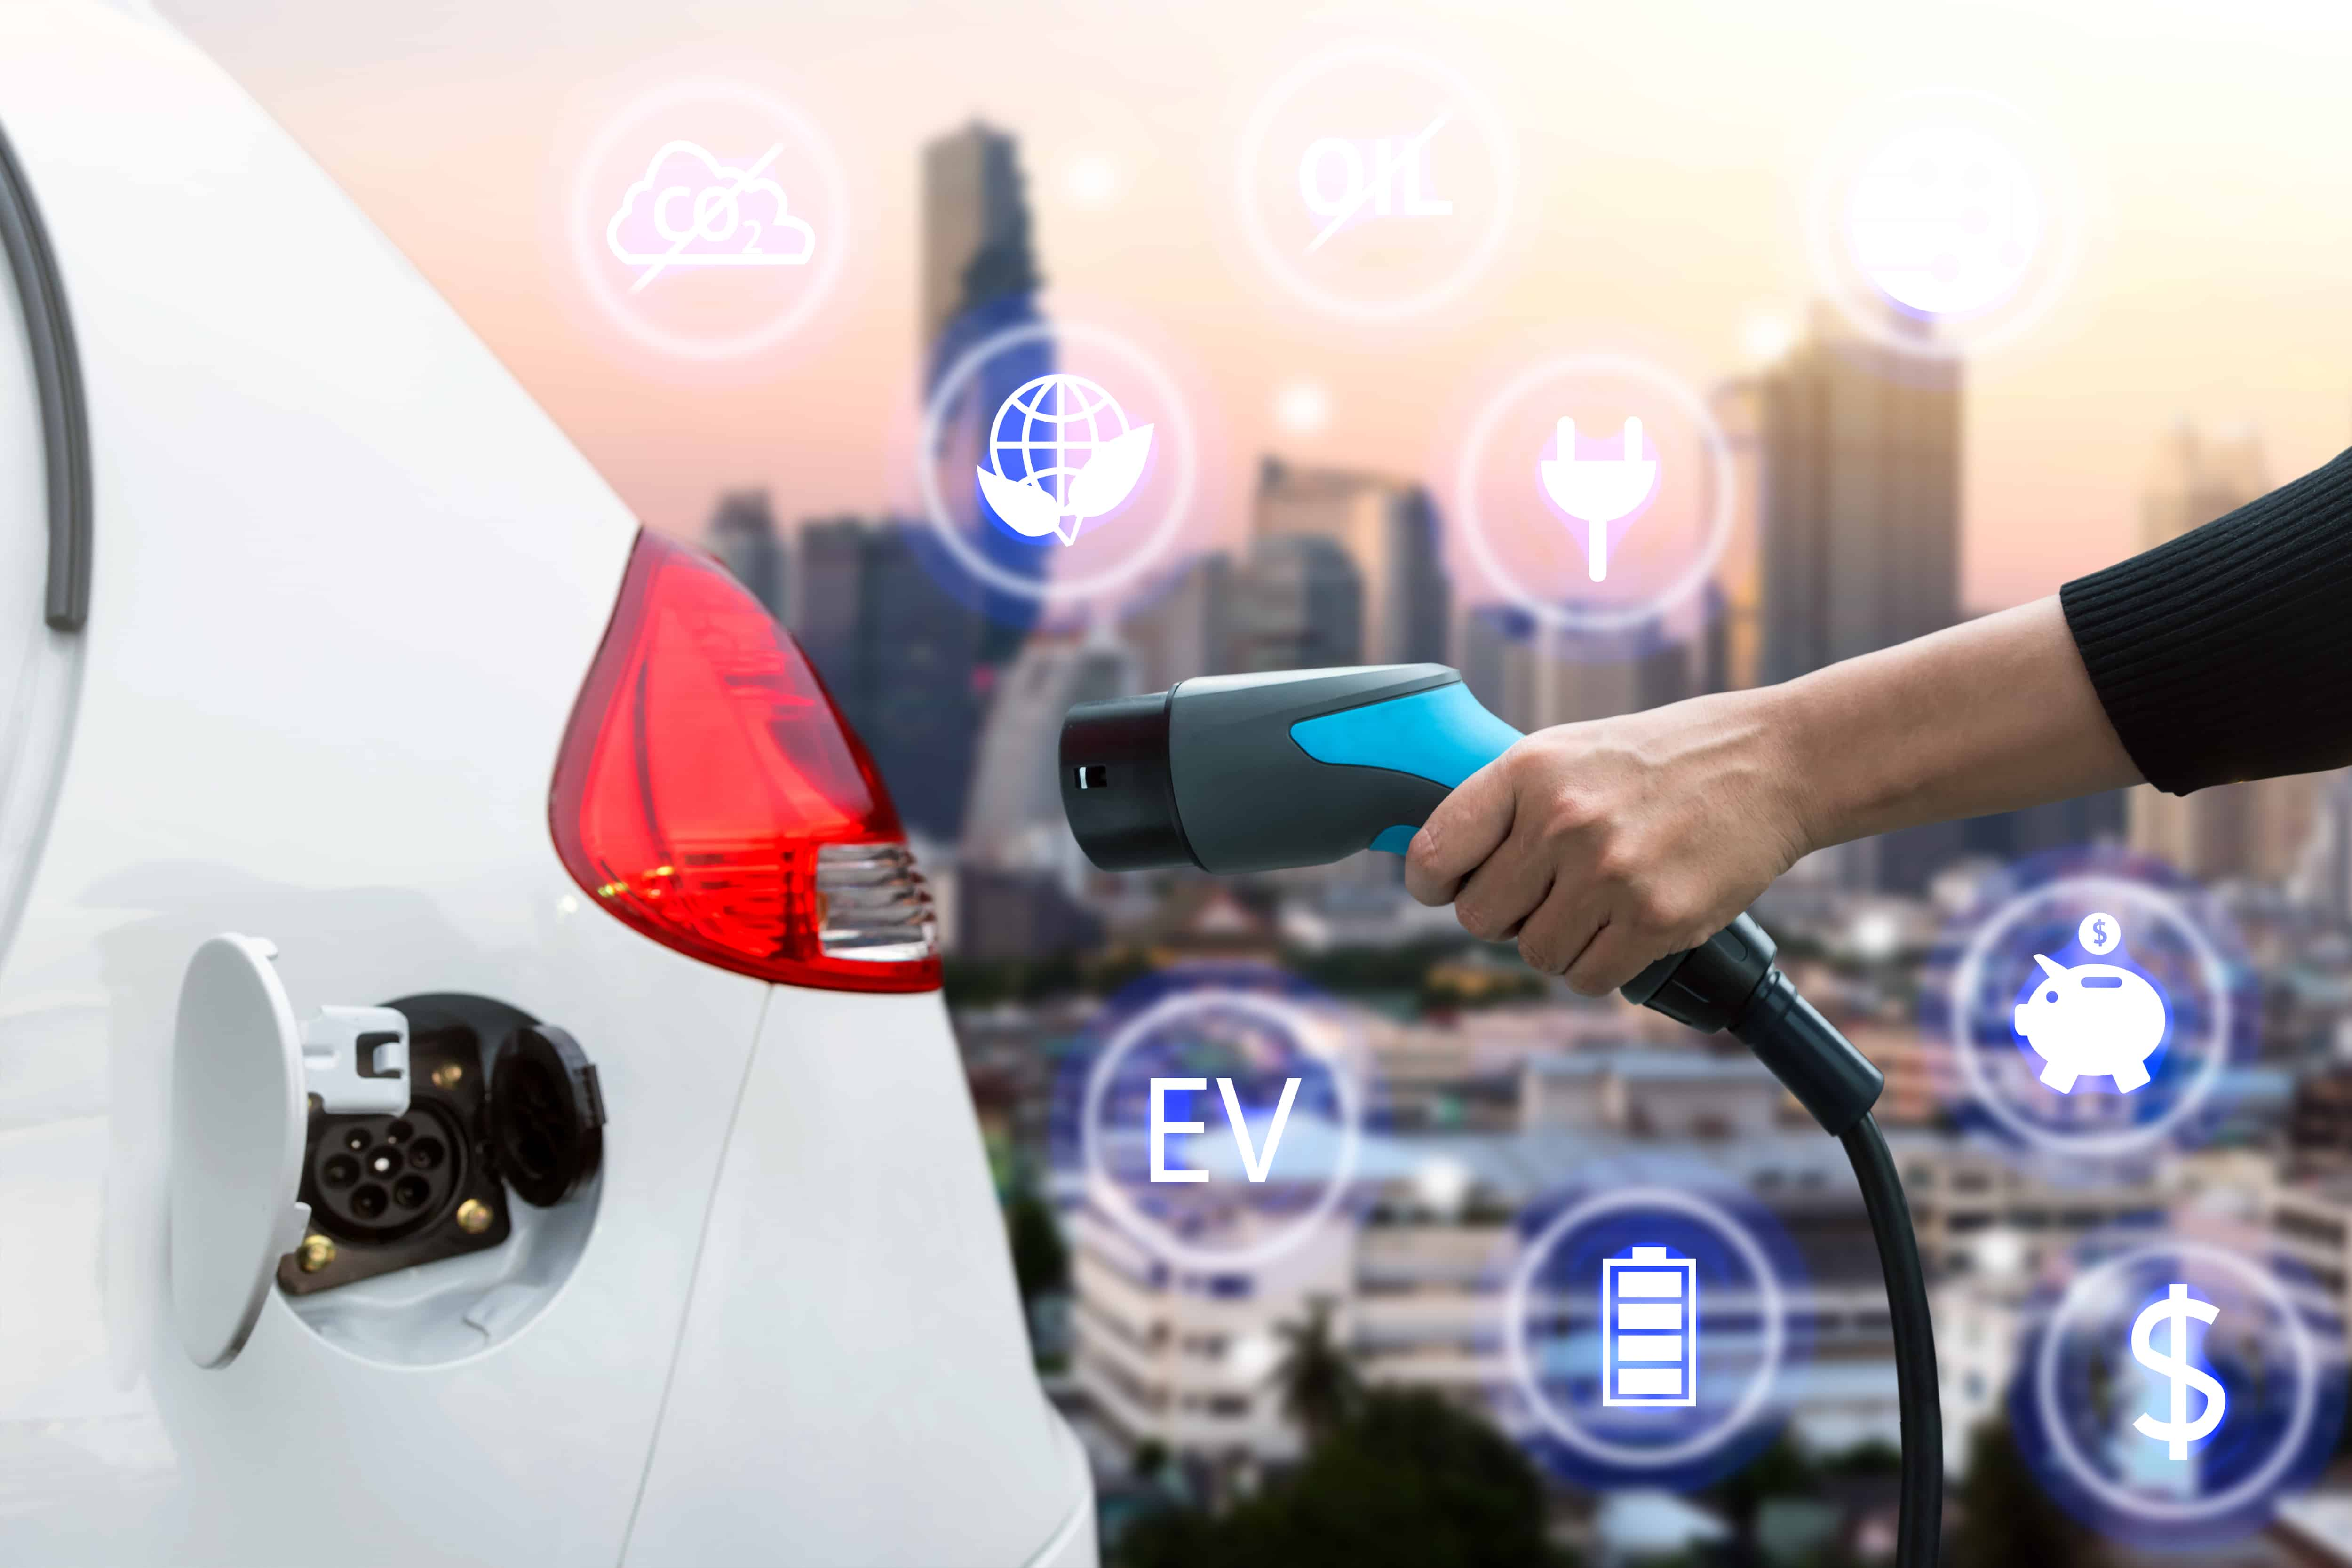 Bringing An Electric Vehicle Ev To Market How Can Electronic China Printed Circuit Board Assembly Ycpcba110045 Pcba Pcb Manufacturing Services Company Ems Help Asteelflash